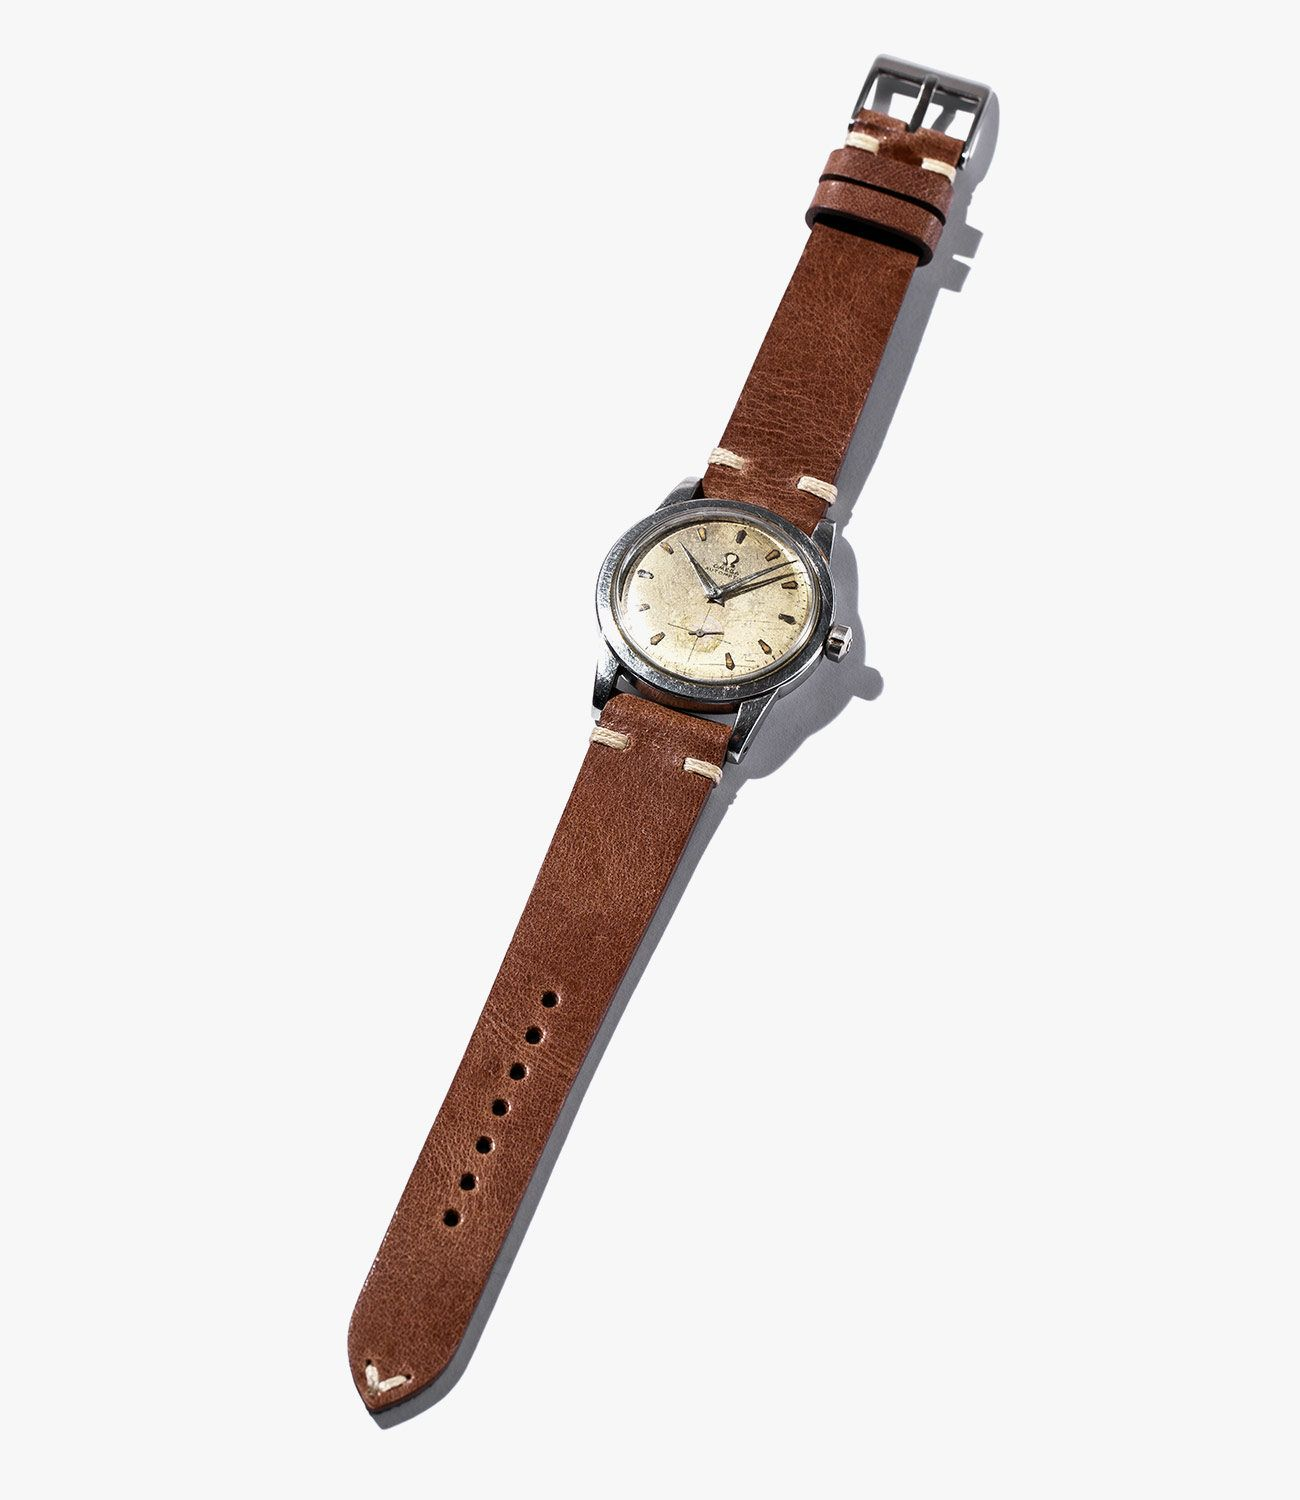 Leather-Watch-Bands-gear-patrol-Crown-and-Buckle-Brown-slide-1